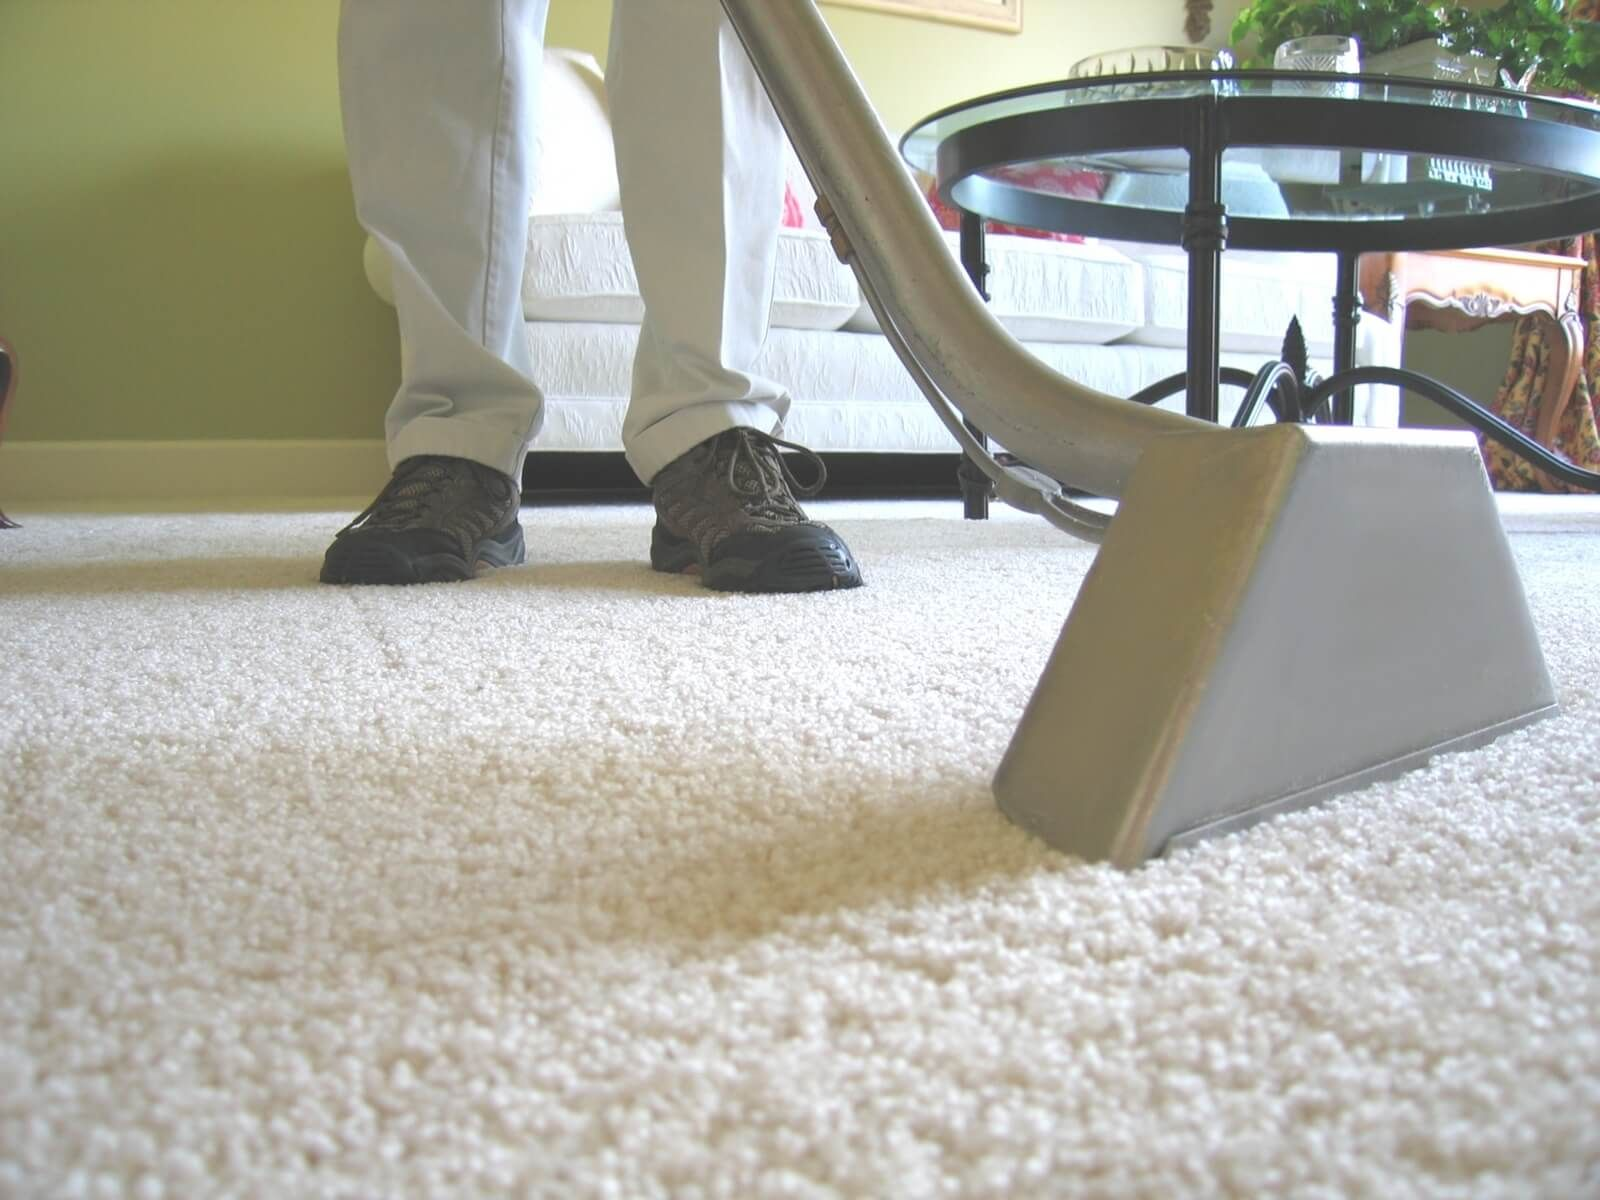 Best Carpet Cleaning Service In Chicago Choice Janitorial Carpet Cleaning Hacks Remove Pet Stains How To Clean Carpet